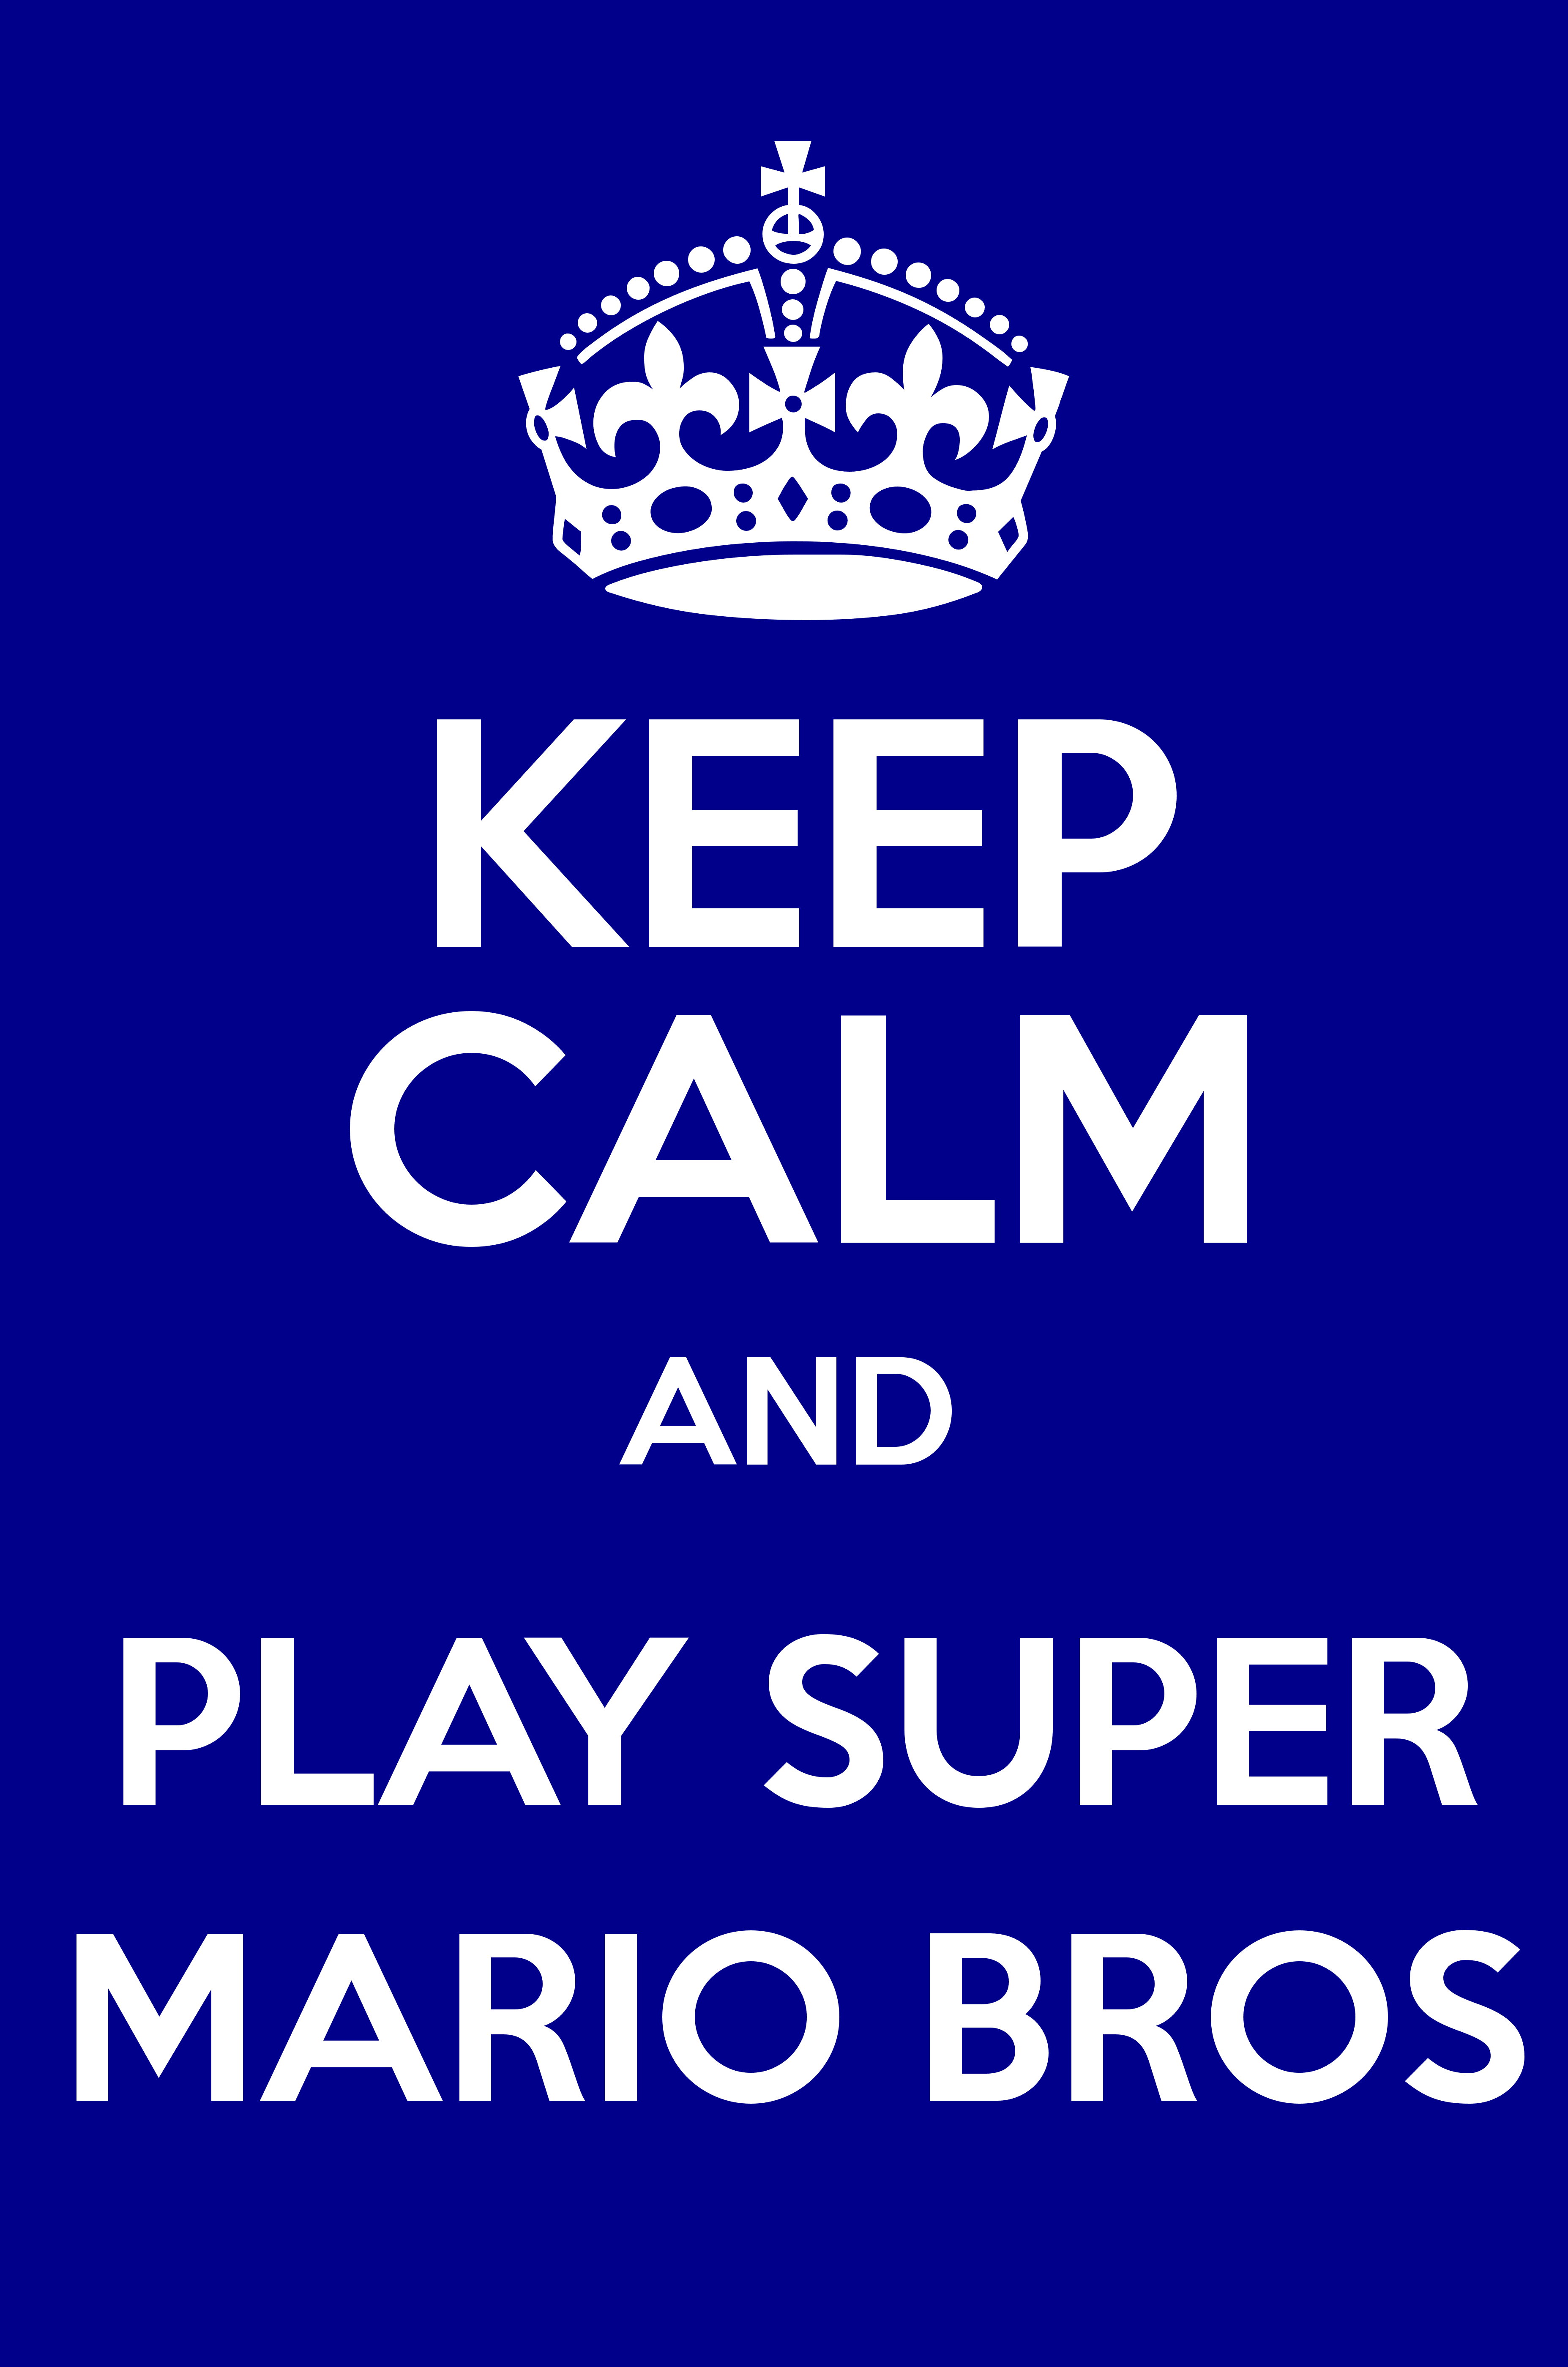 KEEP CALM AND PLAY SUPER MARIO BROS - Keep Calm and Posters